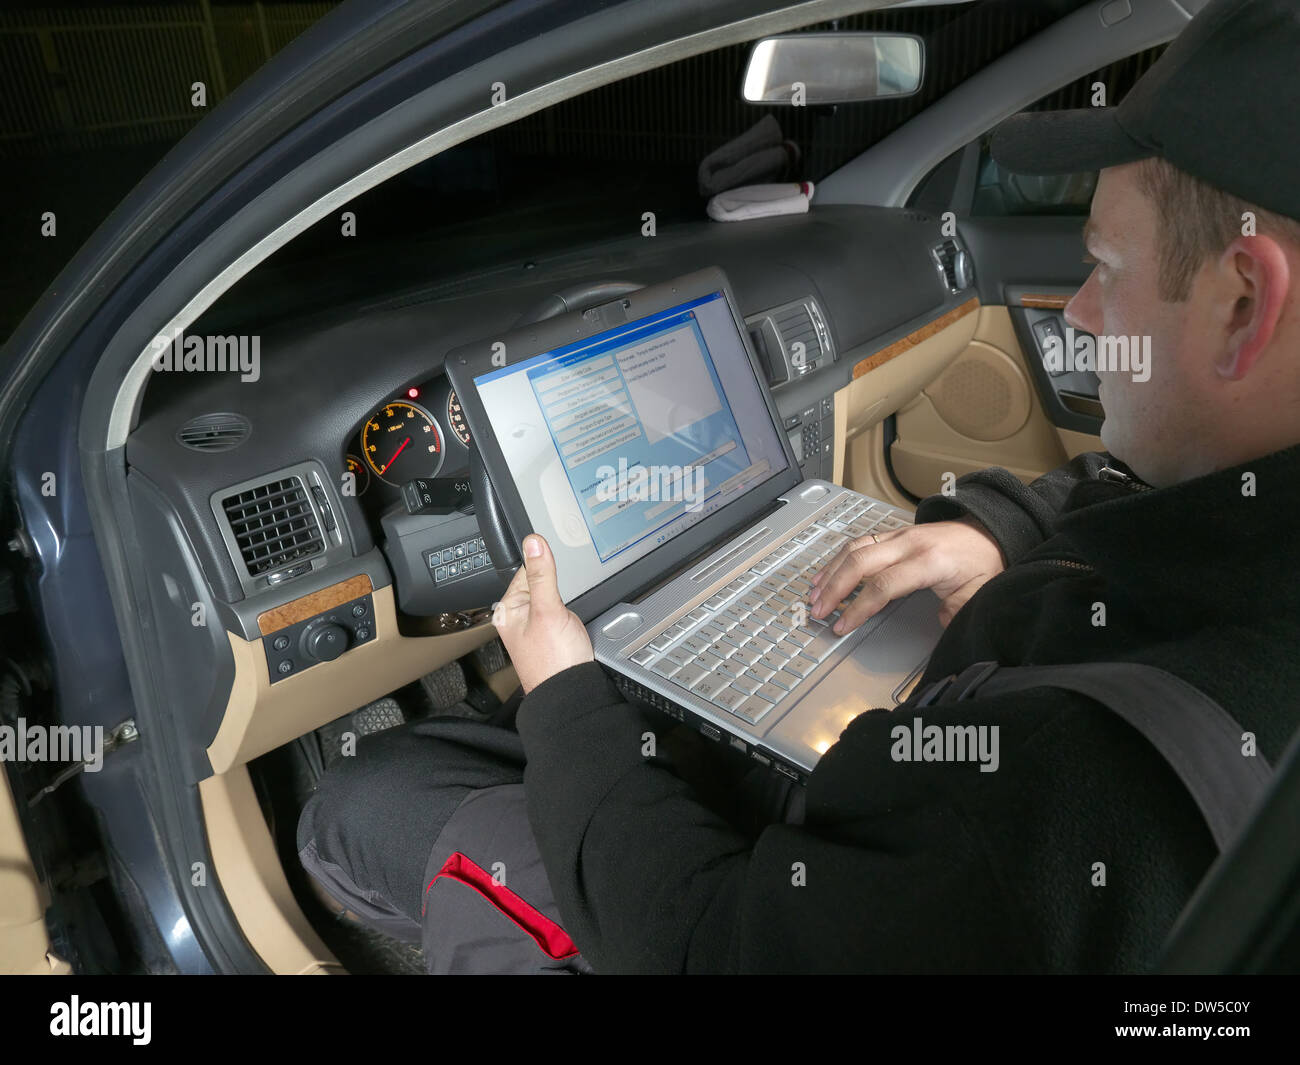 Auto mechanic checking vehicle identification number of the car using laptop hooked up to the car onboard computer - Stock Image